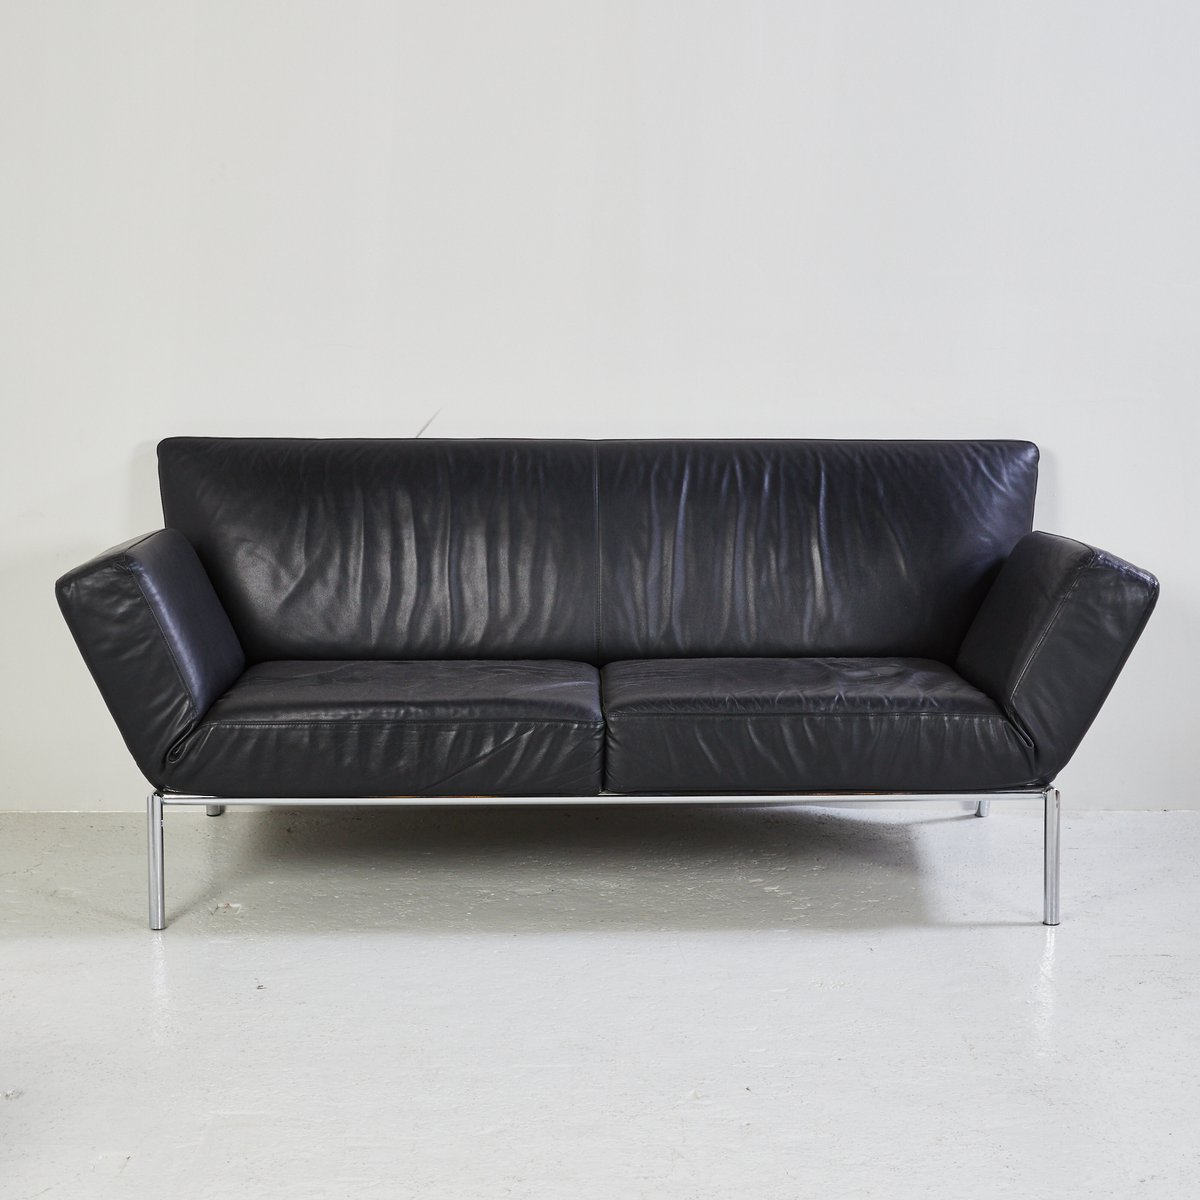 leather sofa set 3 1 dhp emily convertible futon couch gray black from cor for sale at pamono